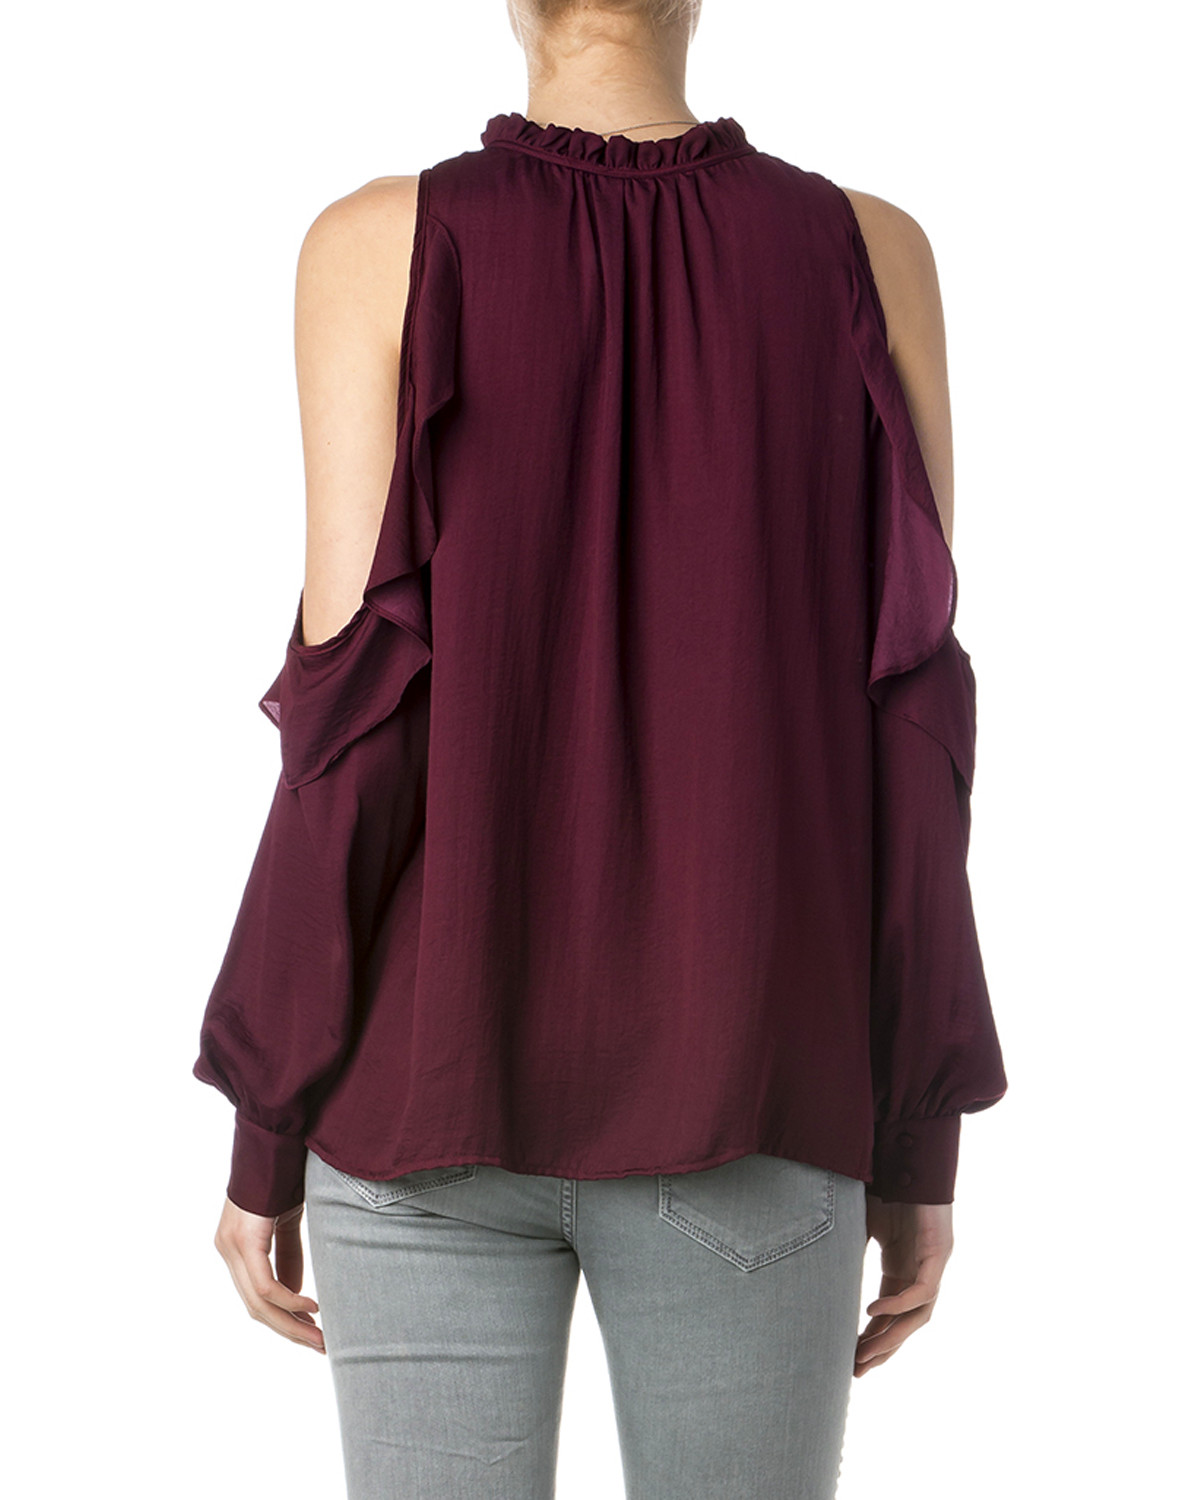 Miss Me Women S Burgundy Cold Shoulder Ruffle Blouse Country Outfitter